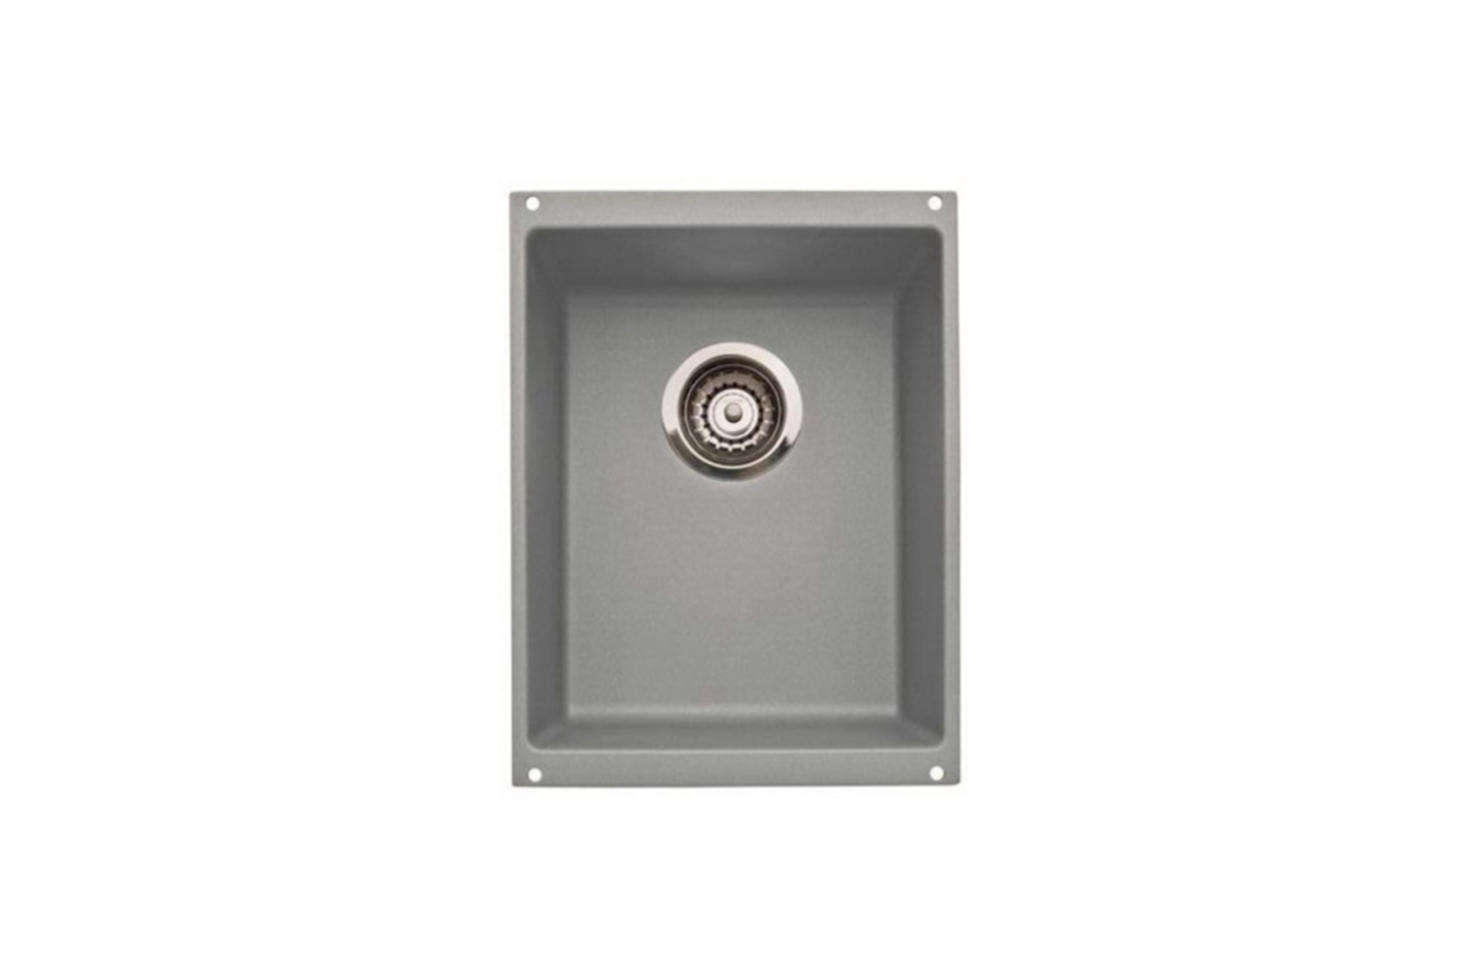 The Blanco Precision Undermount Bar Sink (B54) is available in 8 colors (shown in Metallic Gray) for $444.